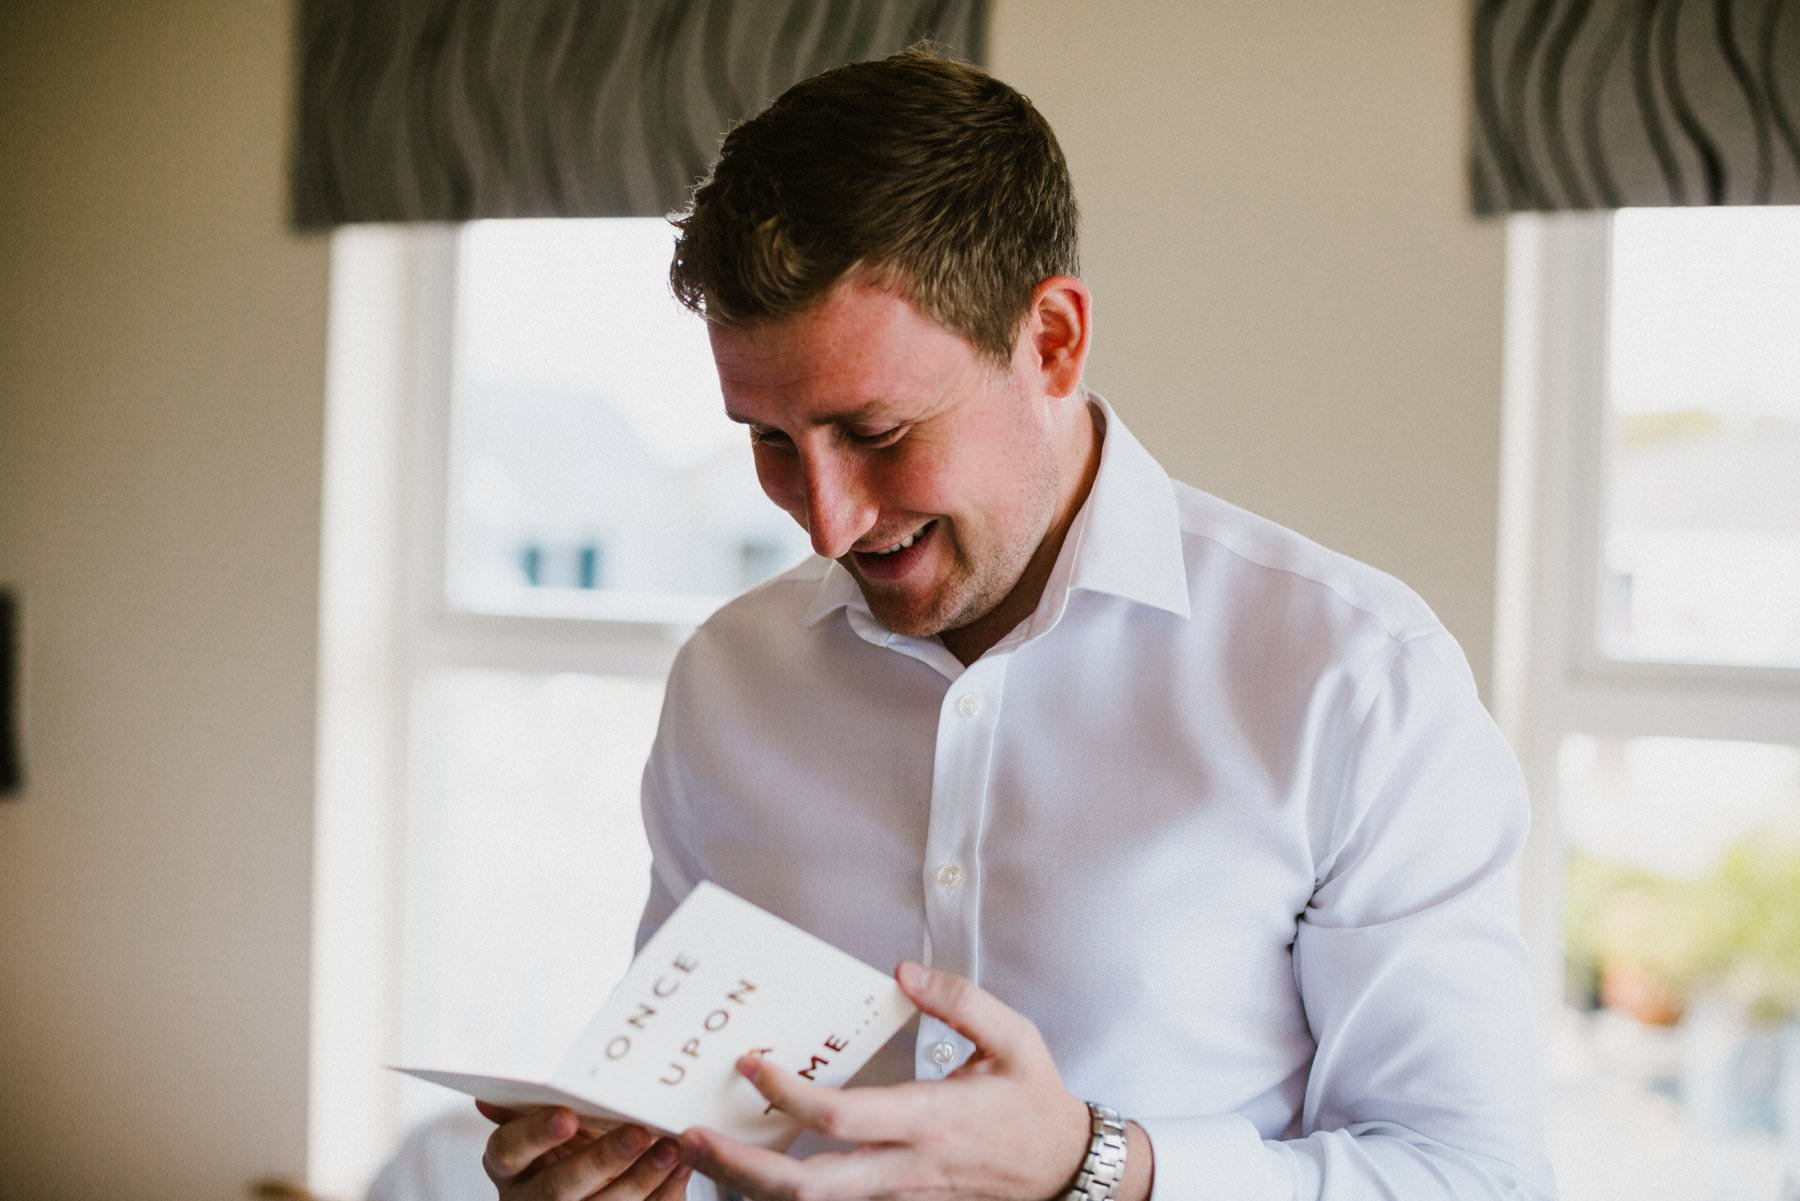 grooms opens card from bride on wedding morning